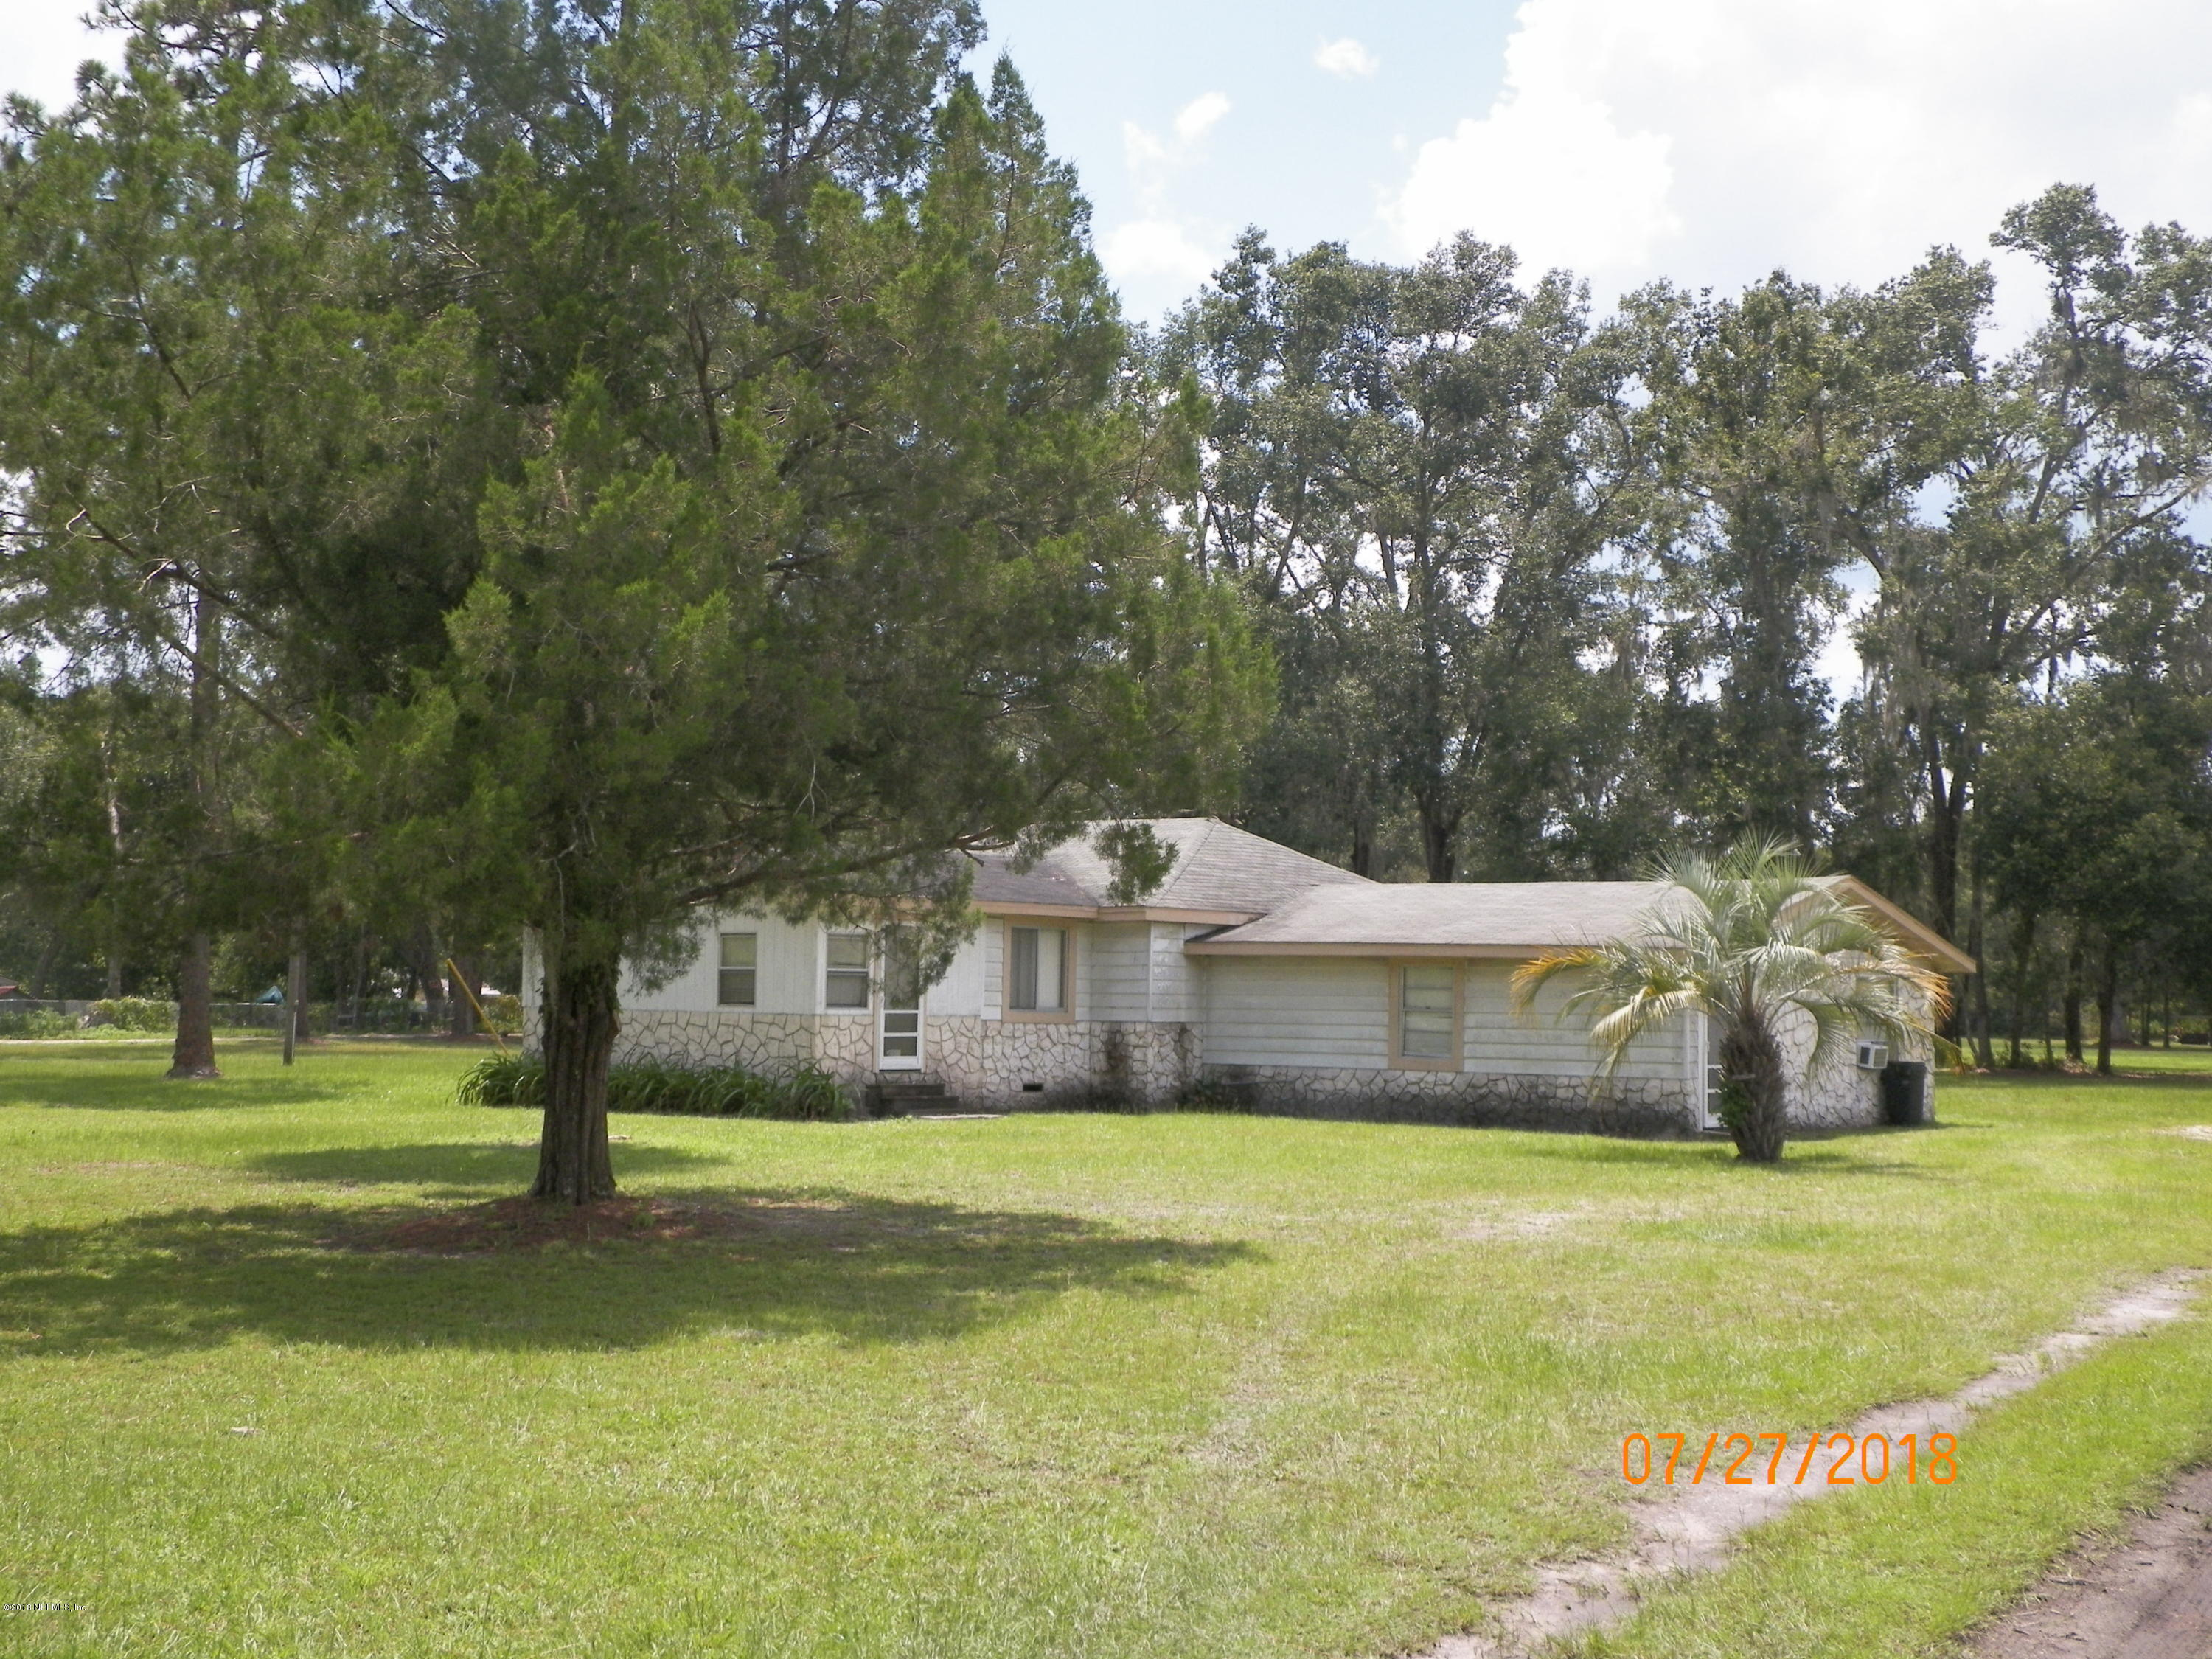 349 ALABAMA, PALATKA, FLORIDA 32177, 3 Bedrooms Bedrooms, ,2 BathroomsBathrooms,Residential - single family,For sale,ALABAMA,949689